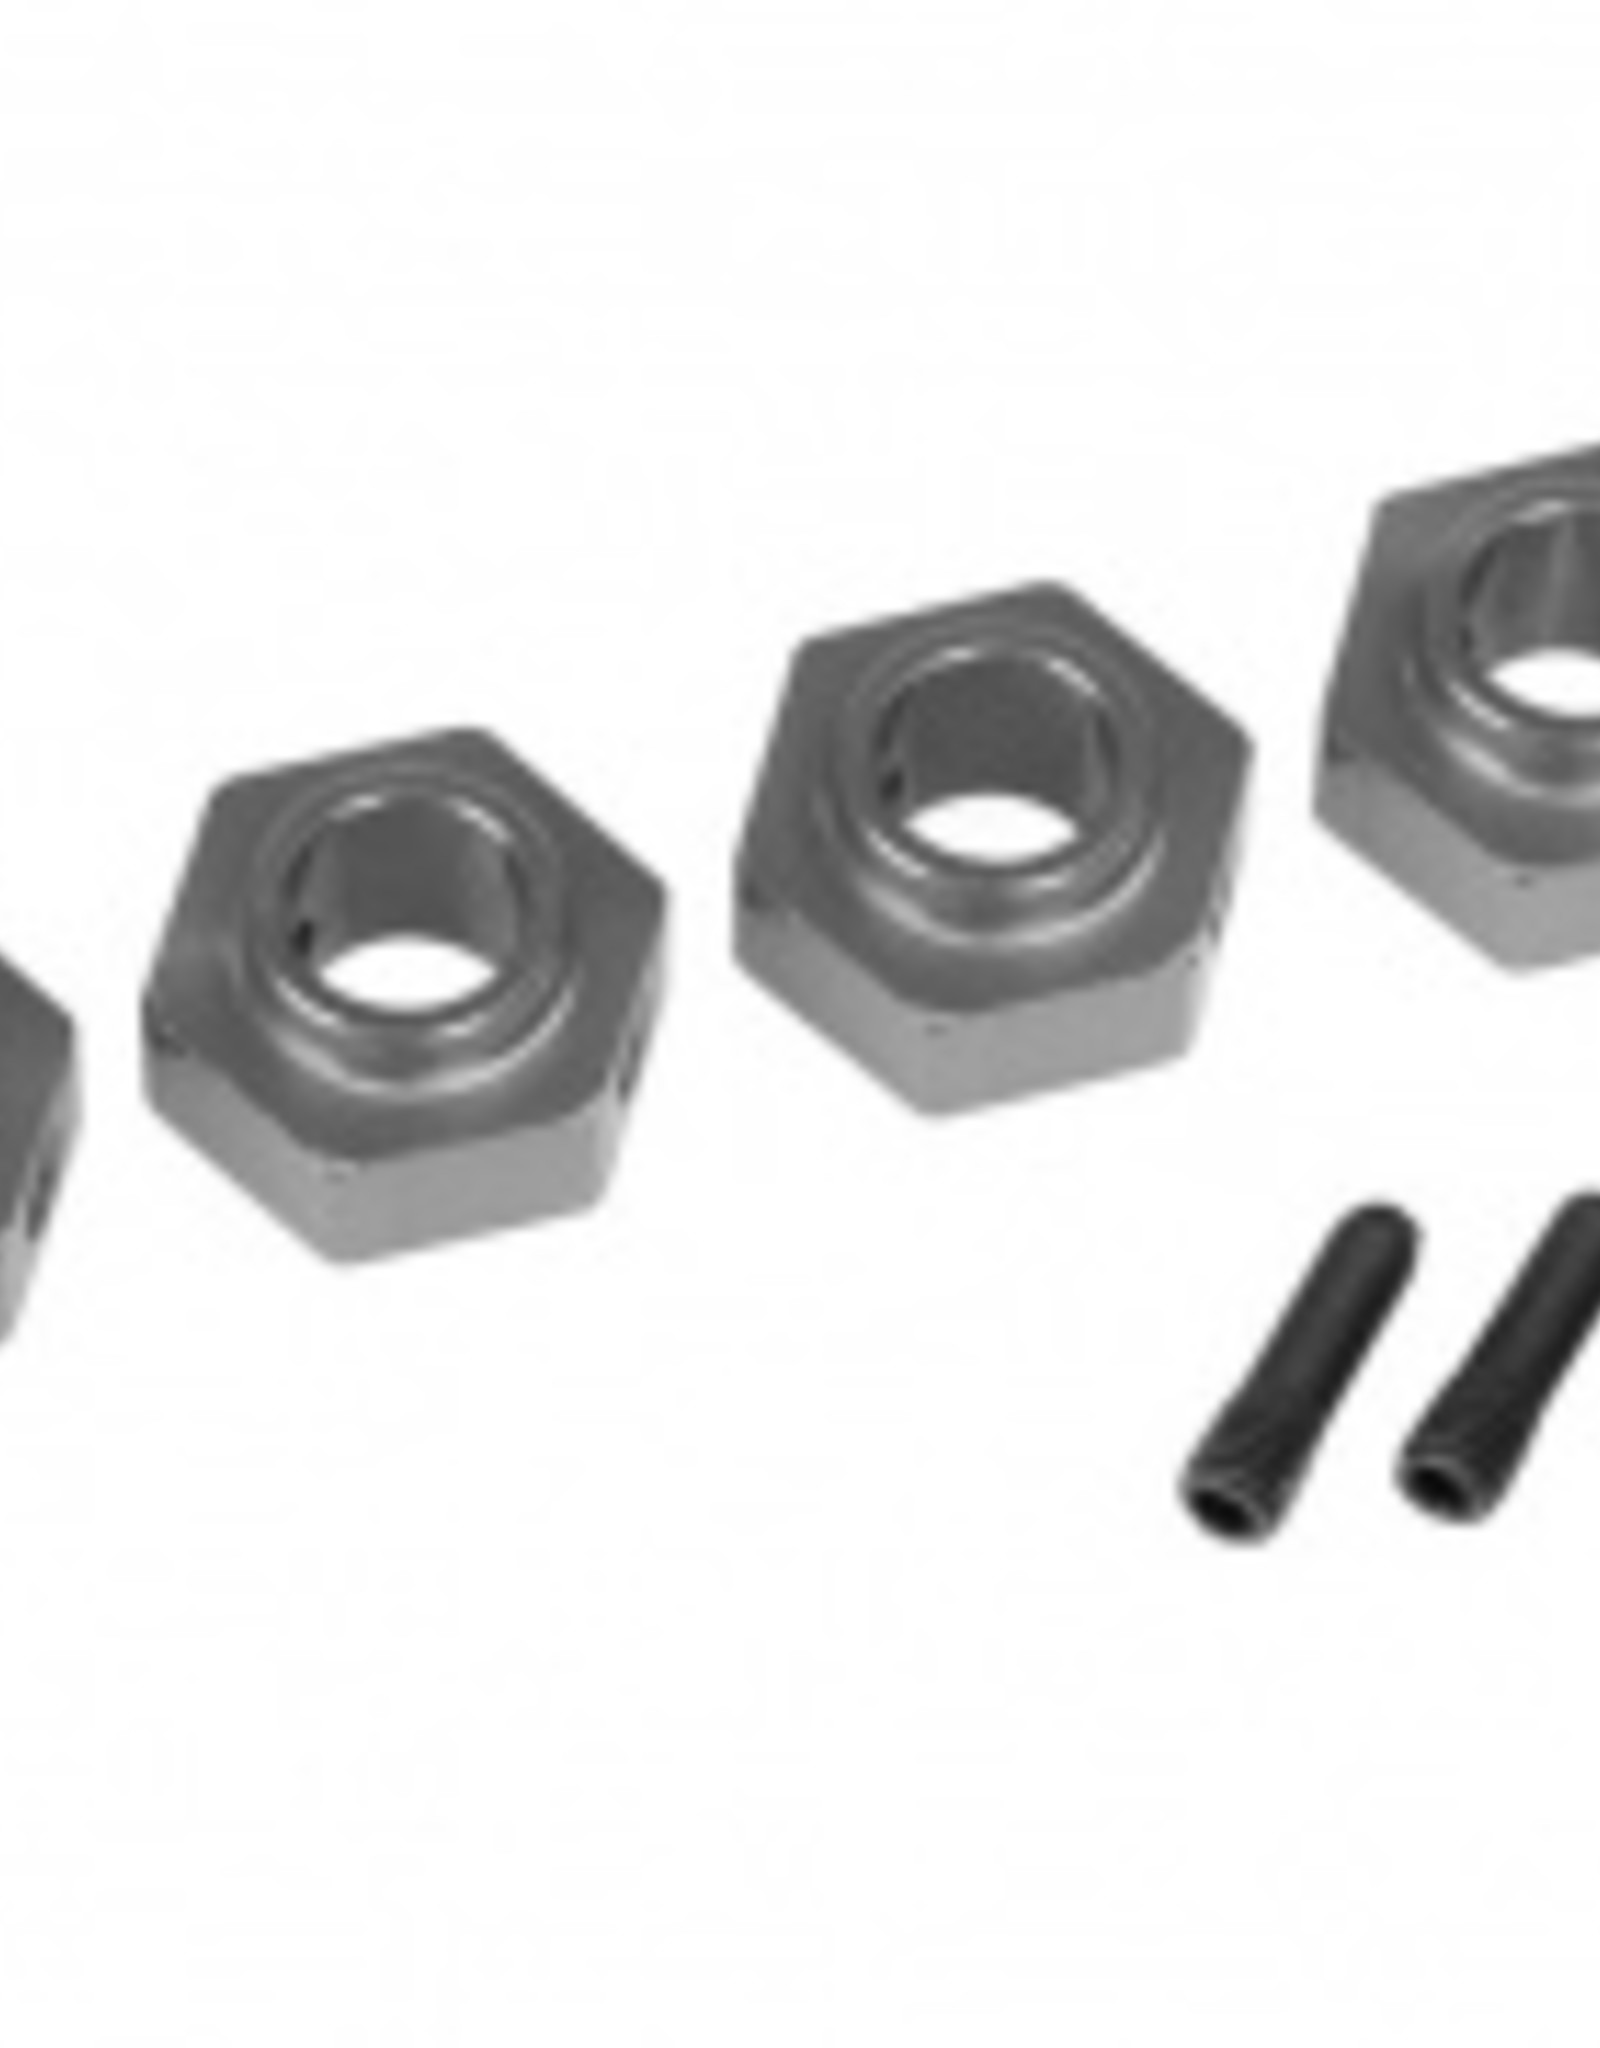 Traxxas Traxxas TRX Wheel hubs, 12mm hex, 6061-T6 aluminum (charcoal gray-anodized) (4)/ screw pin (4)